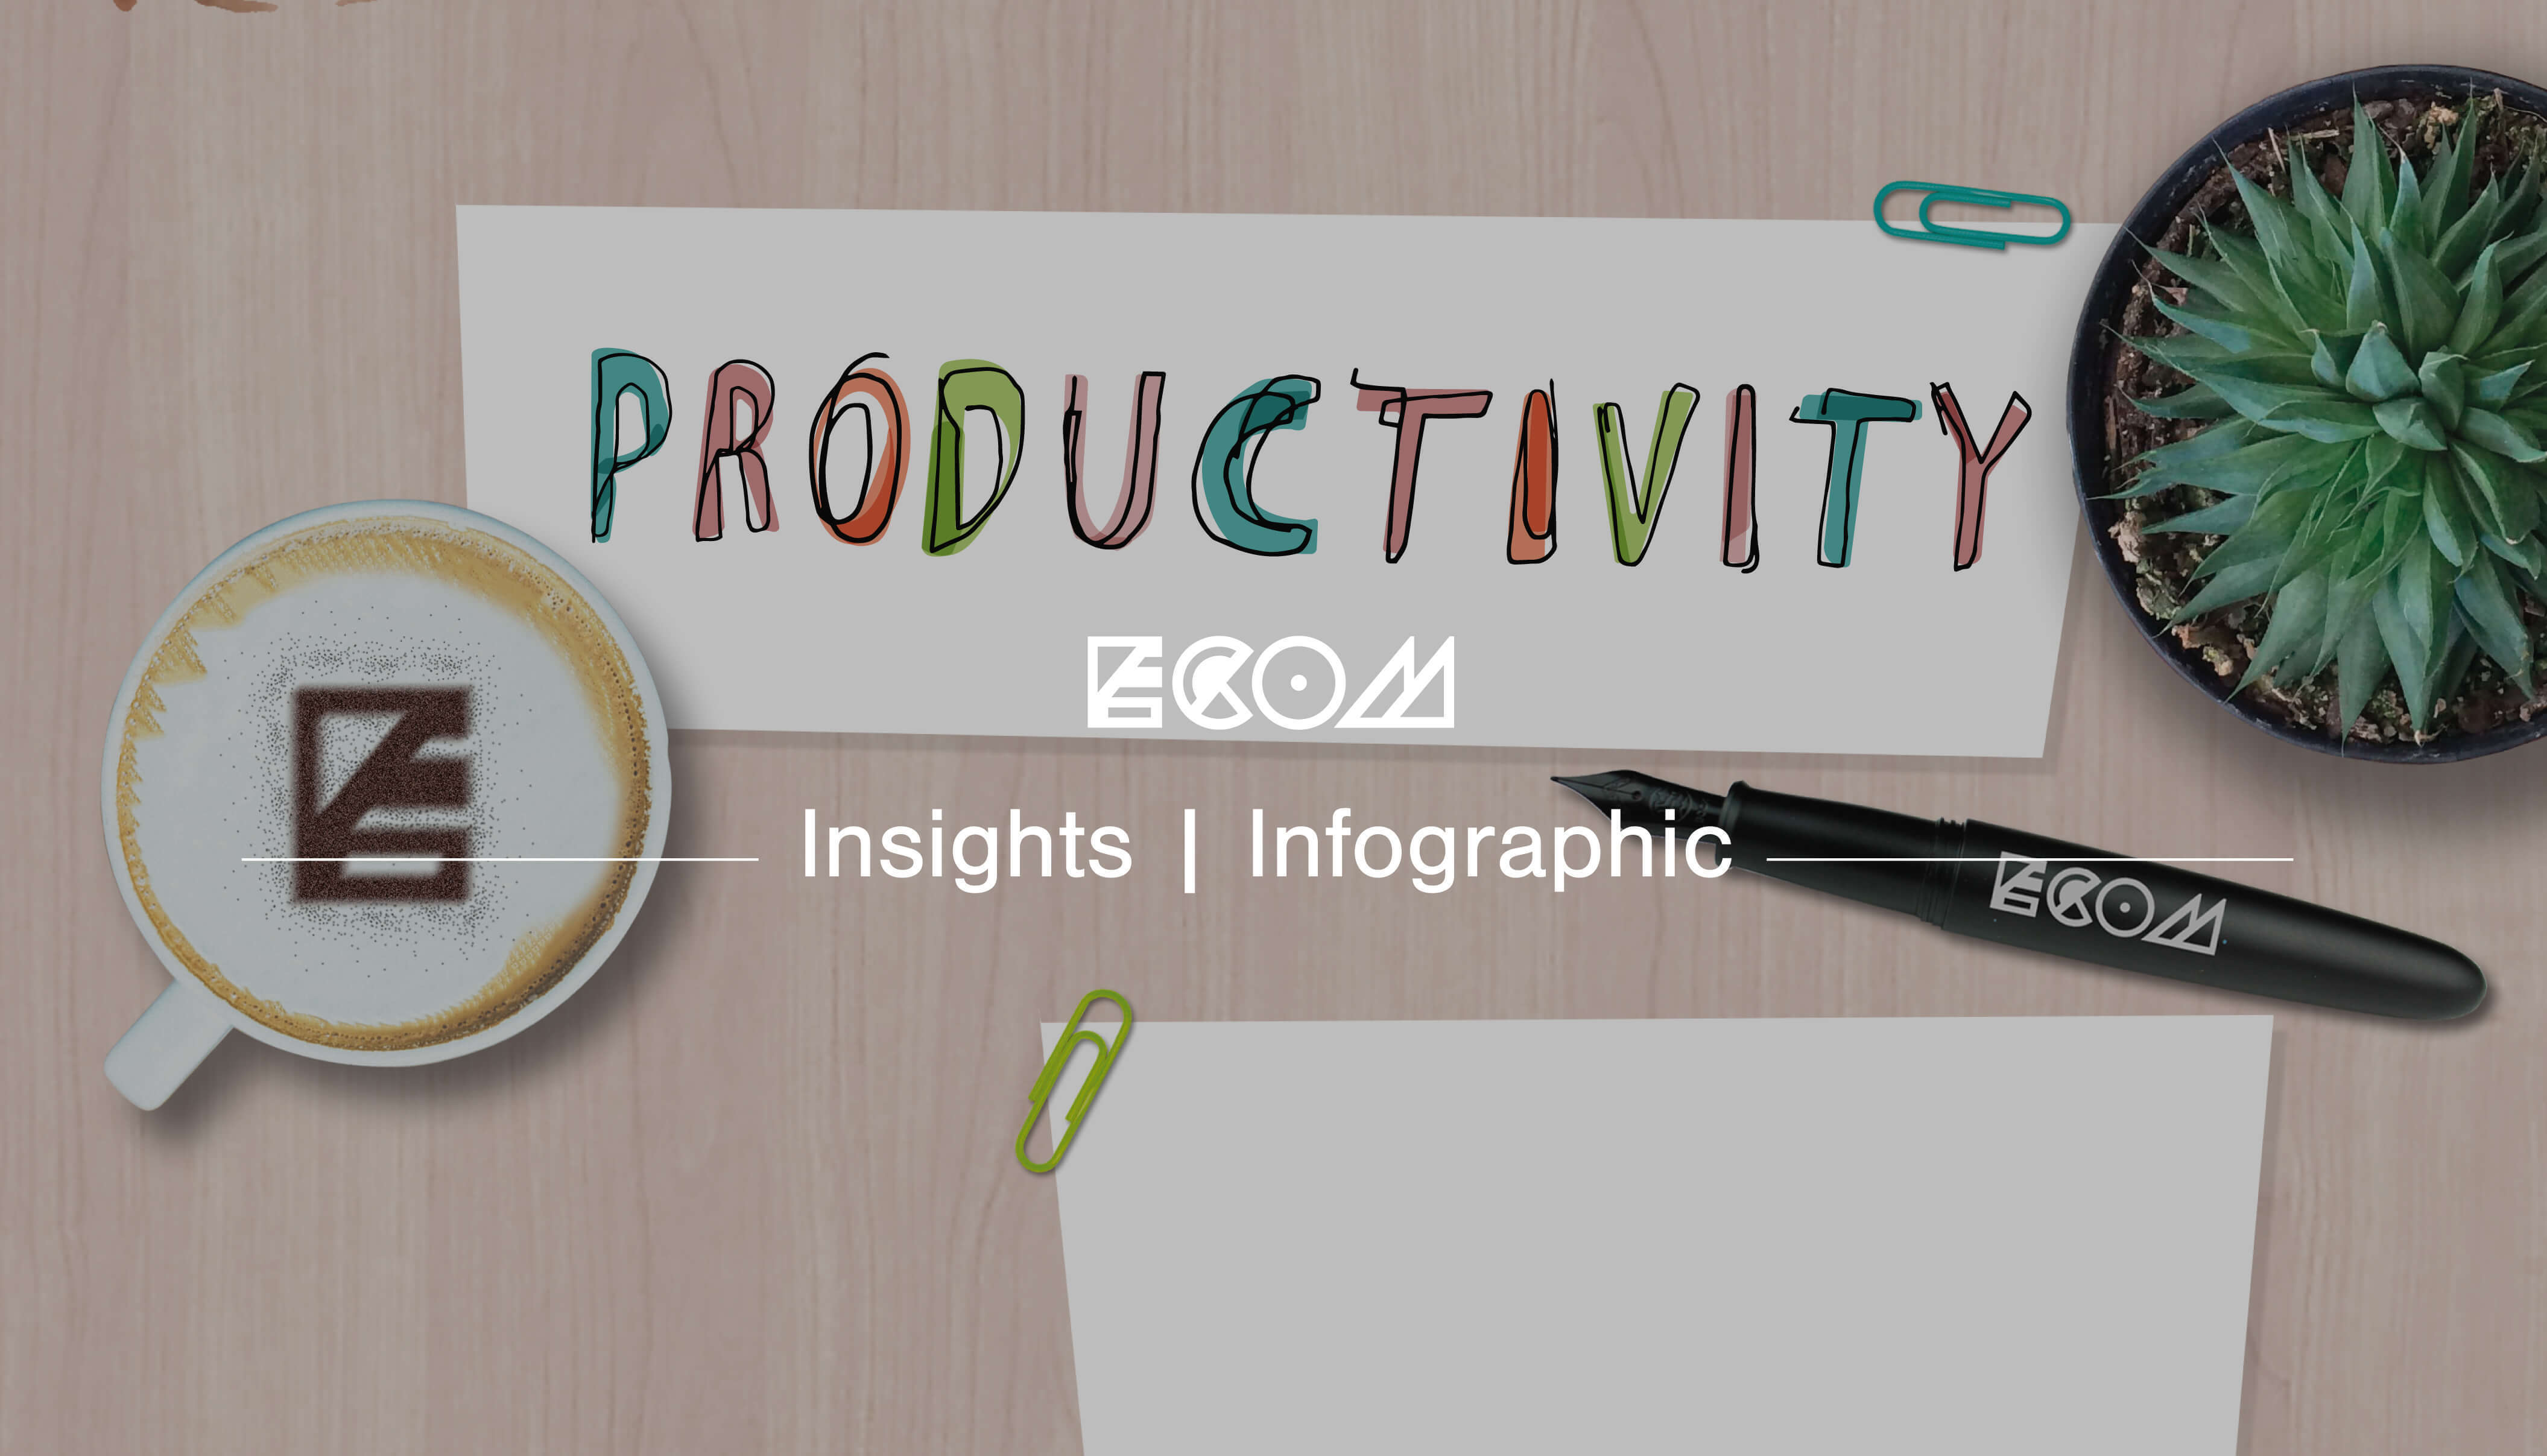 About Productivity how to be more productive at work | ecom